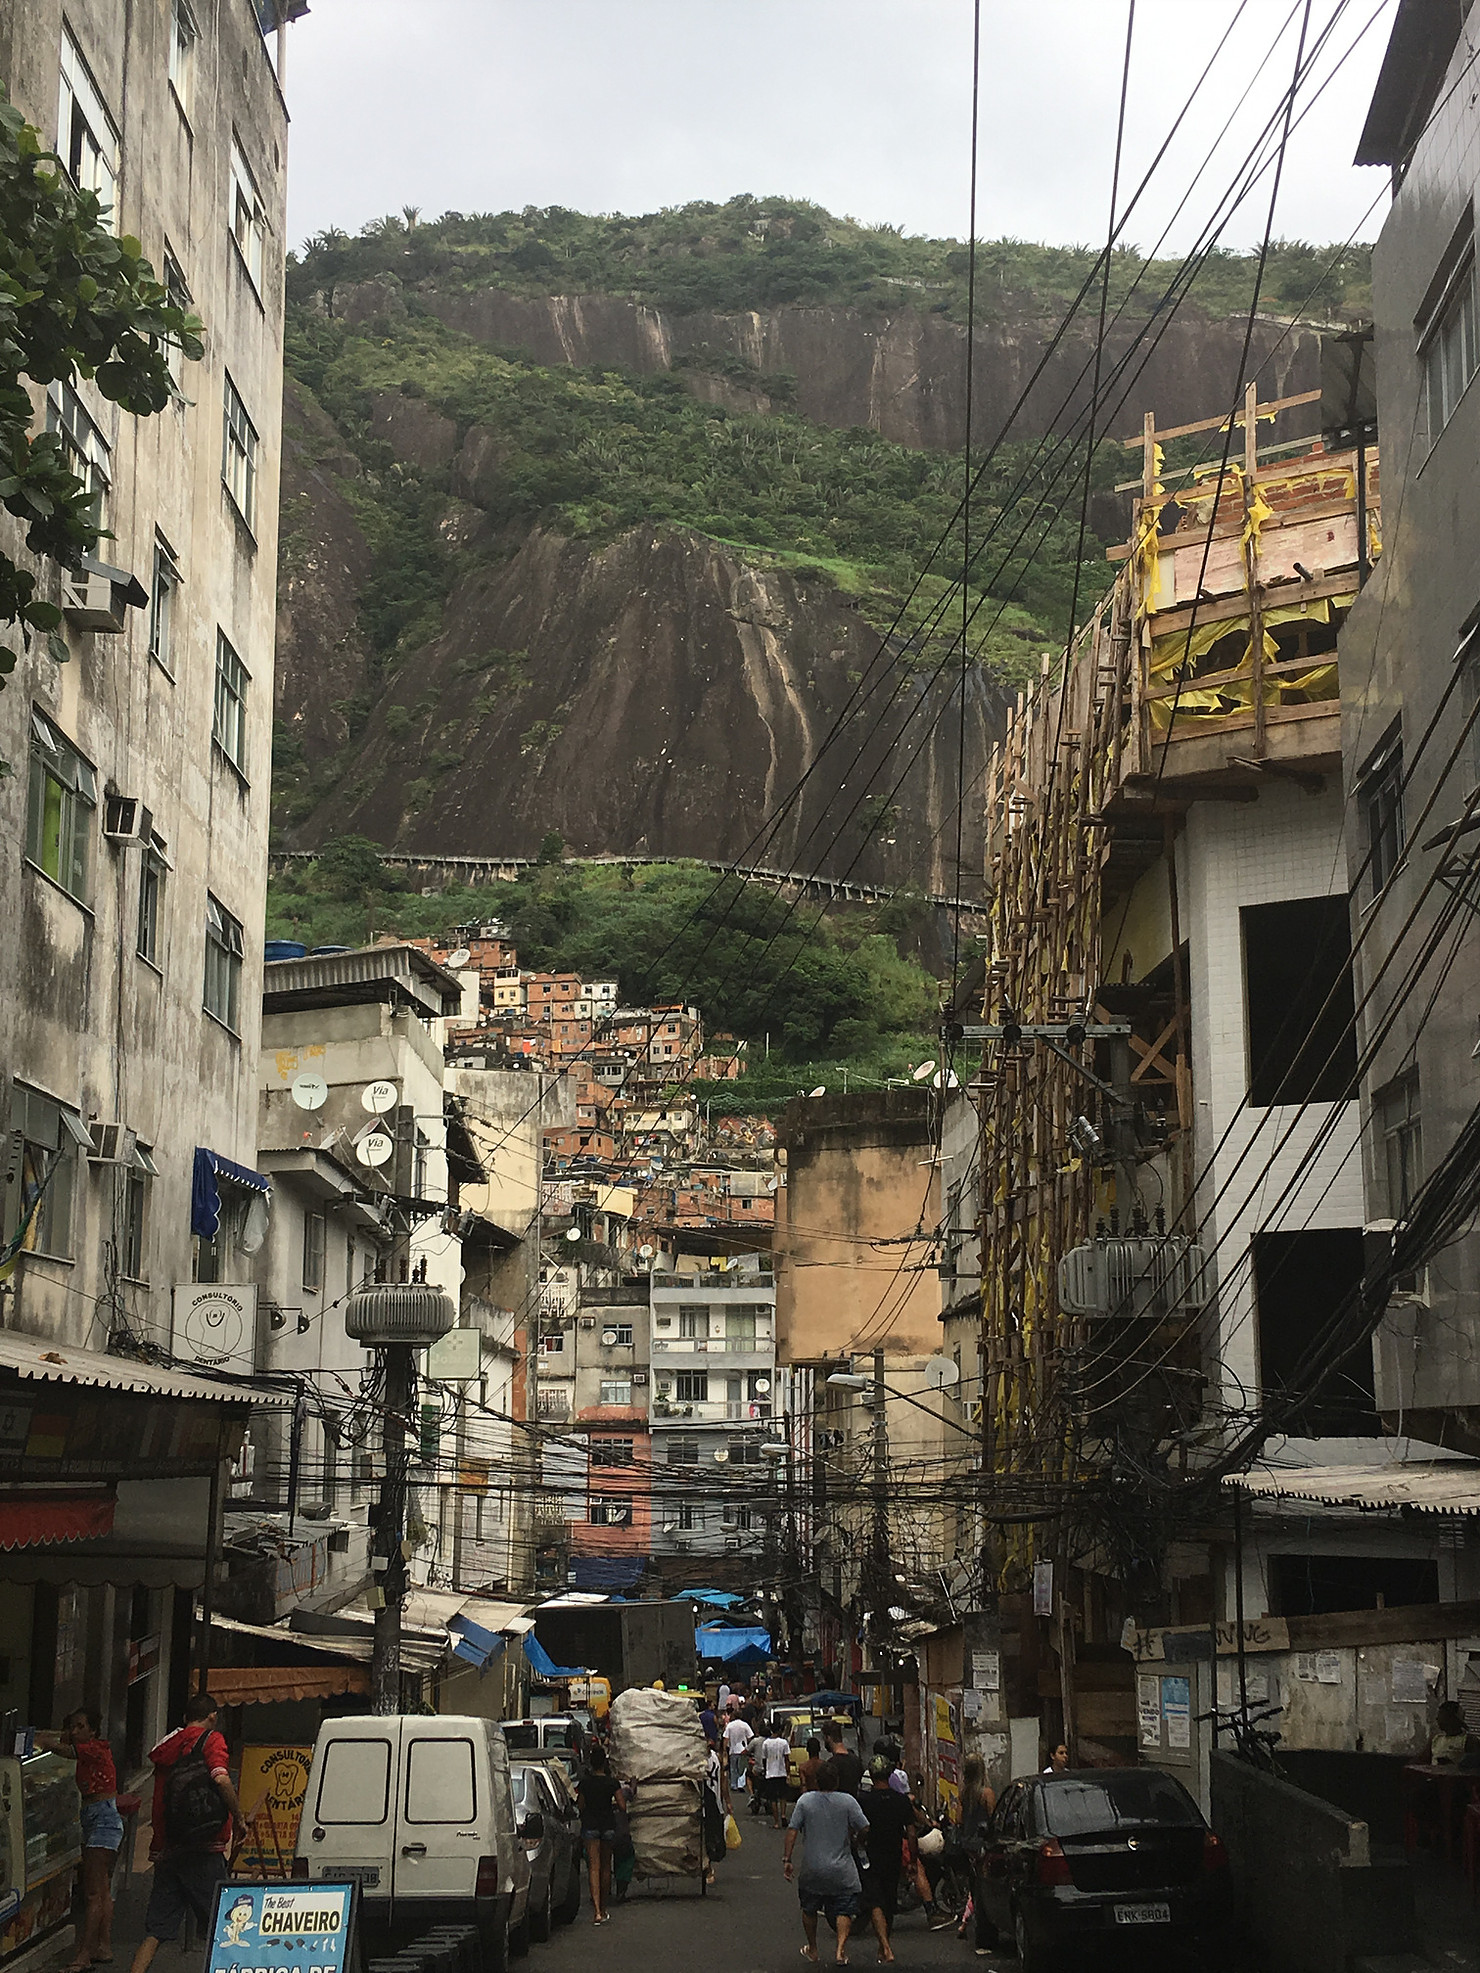 A picture of Rio favelas